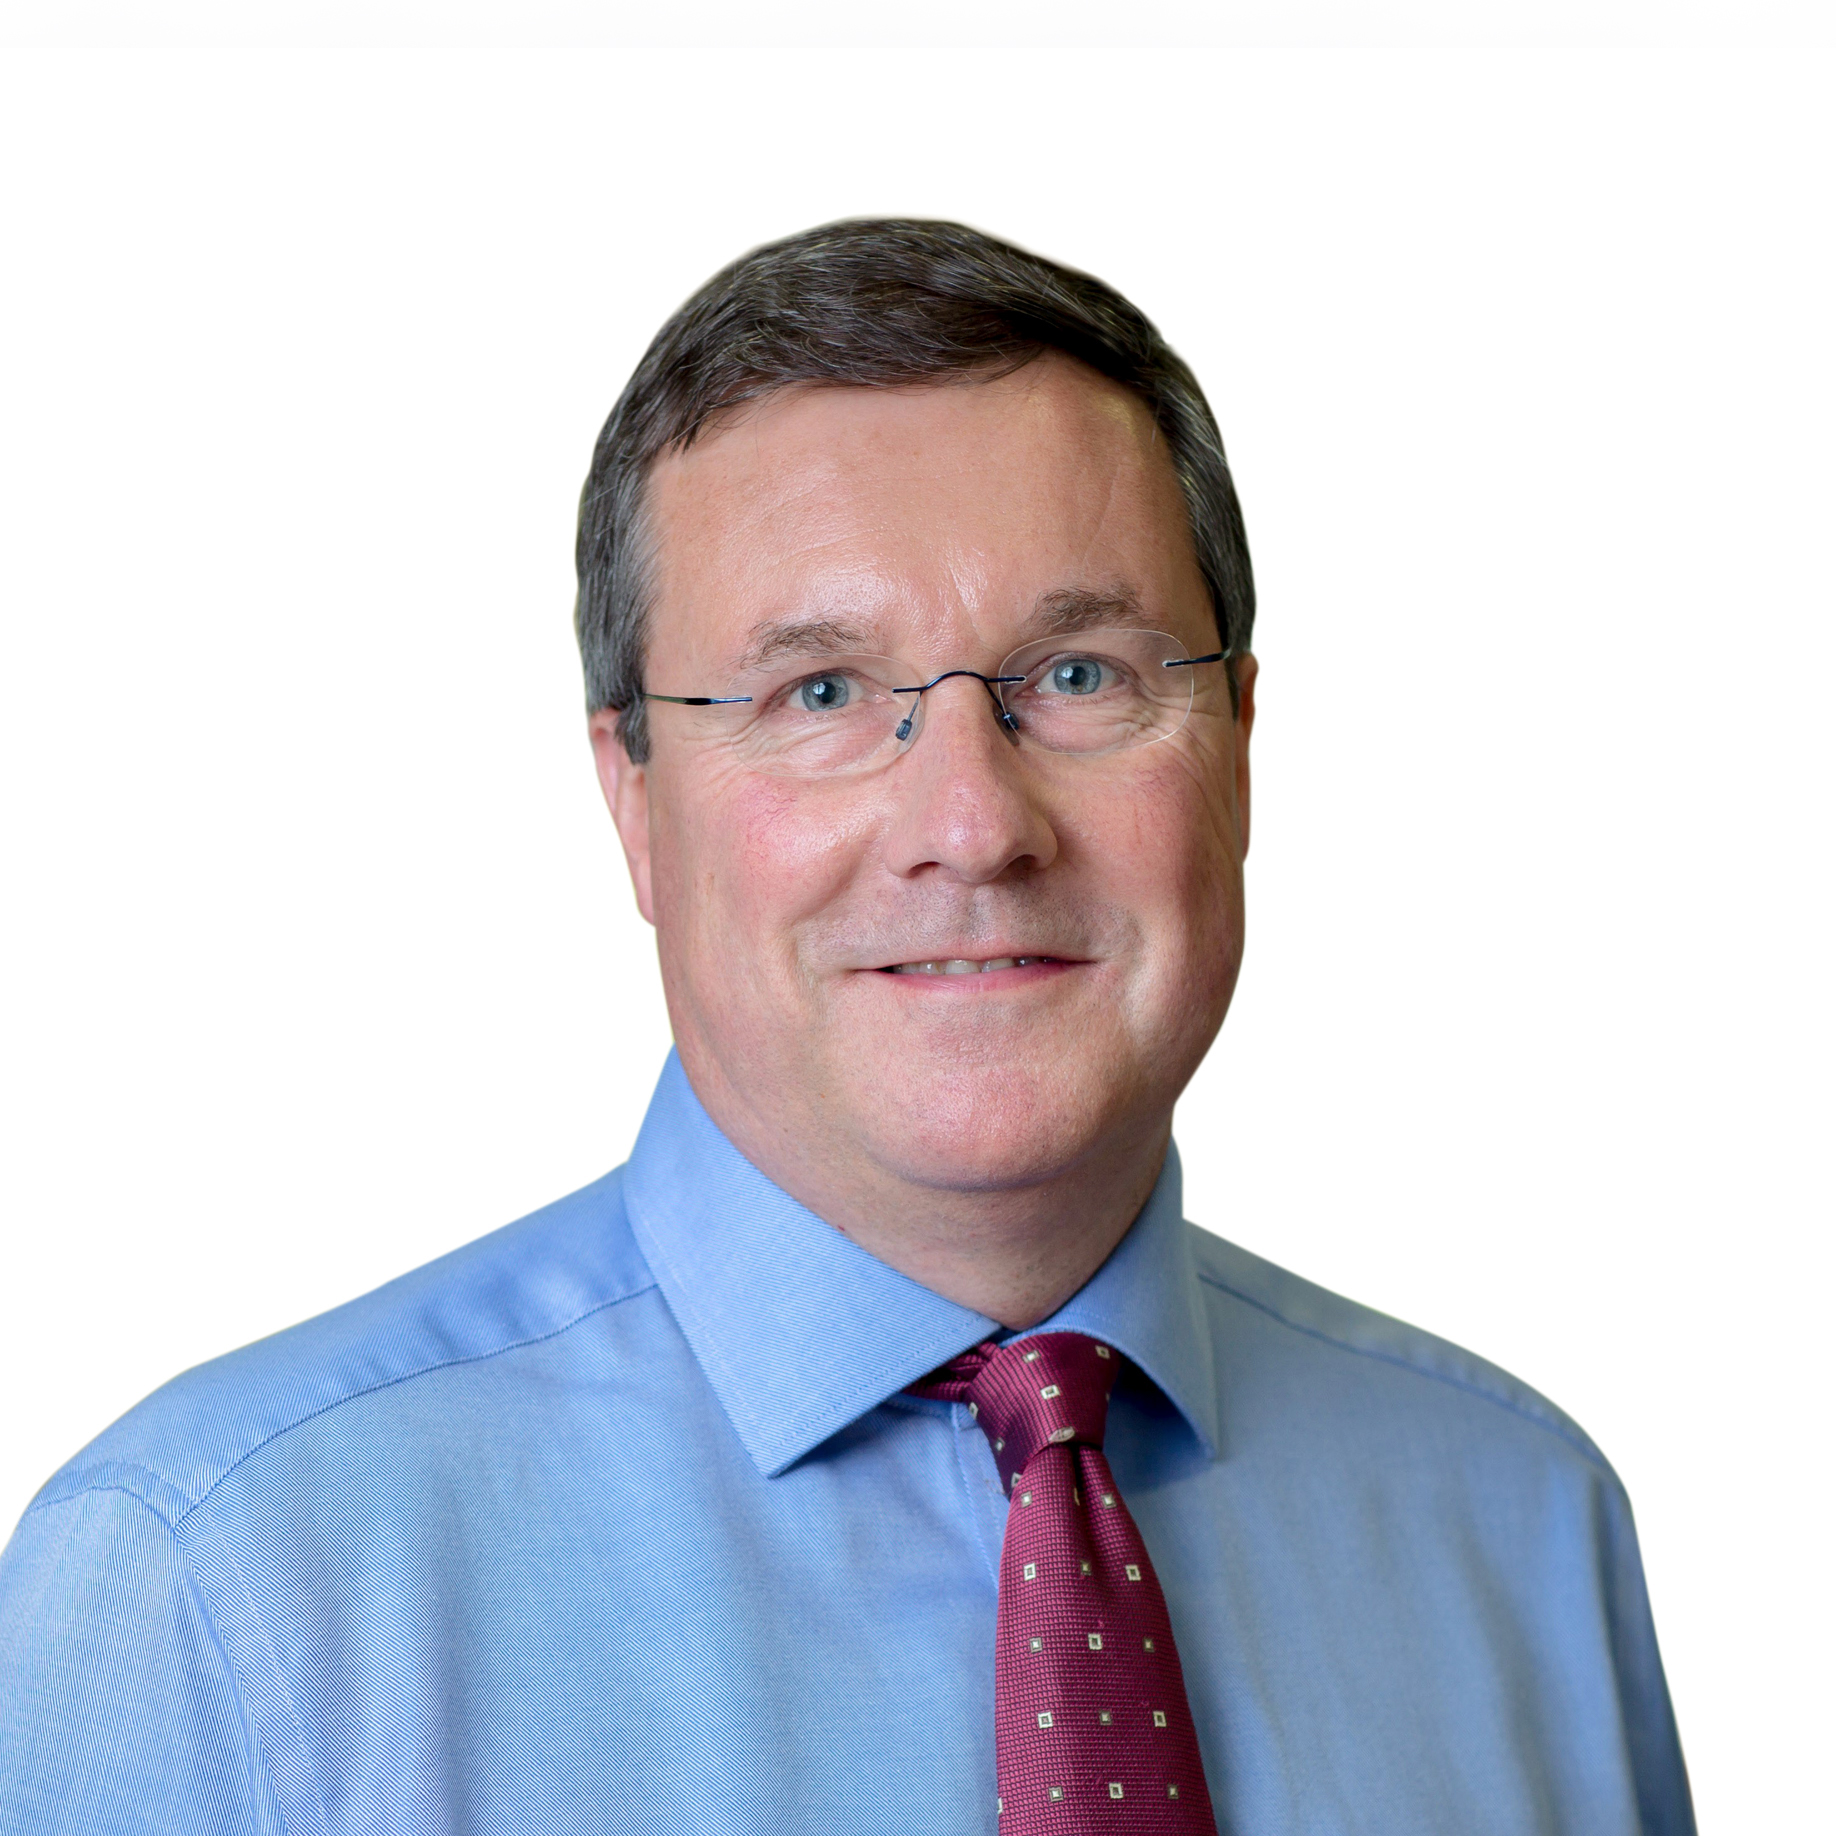 Duncan Weir, Managing Partner